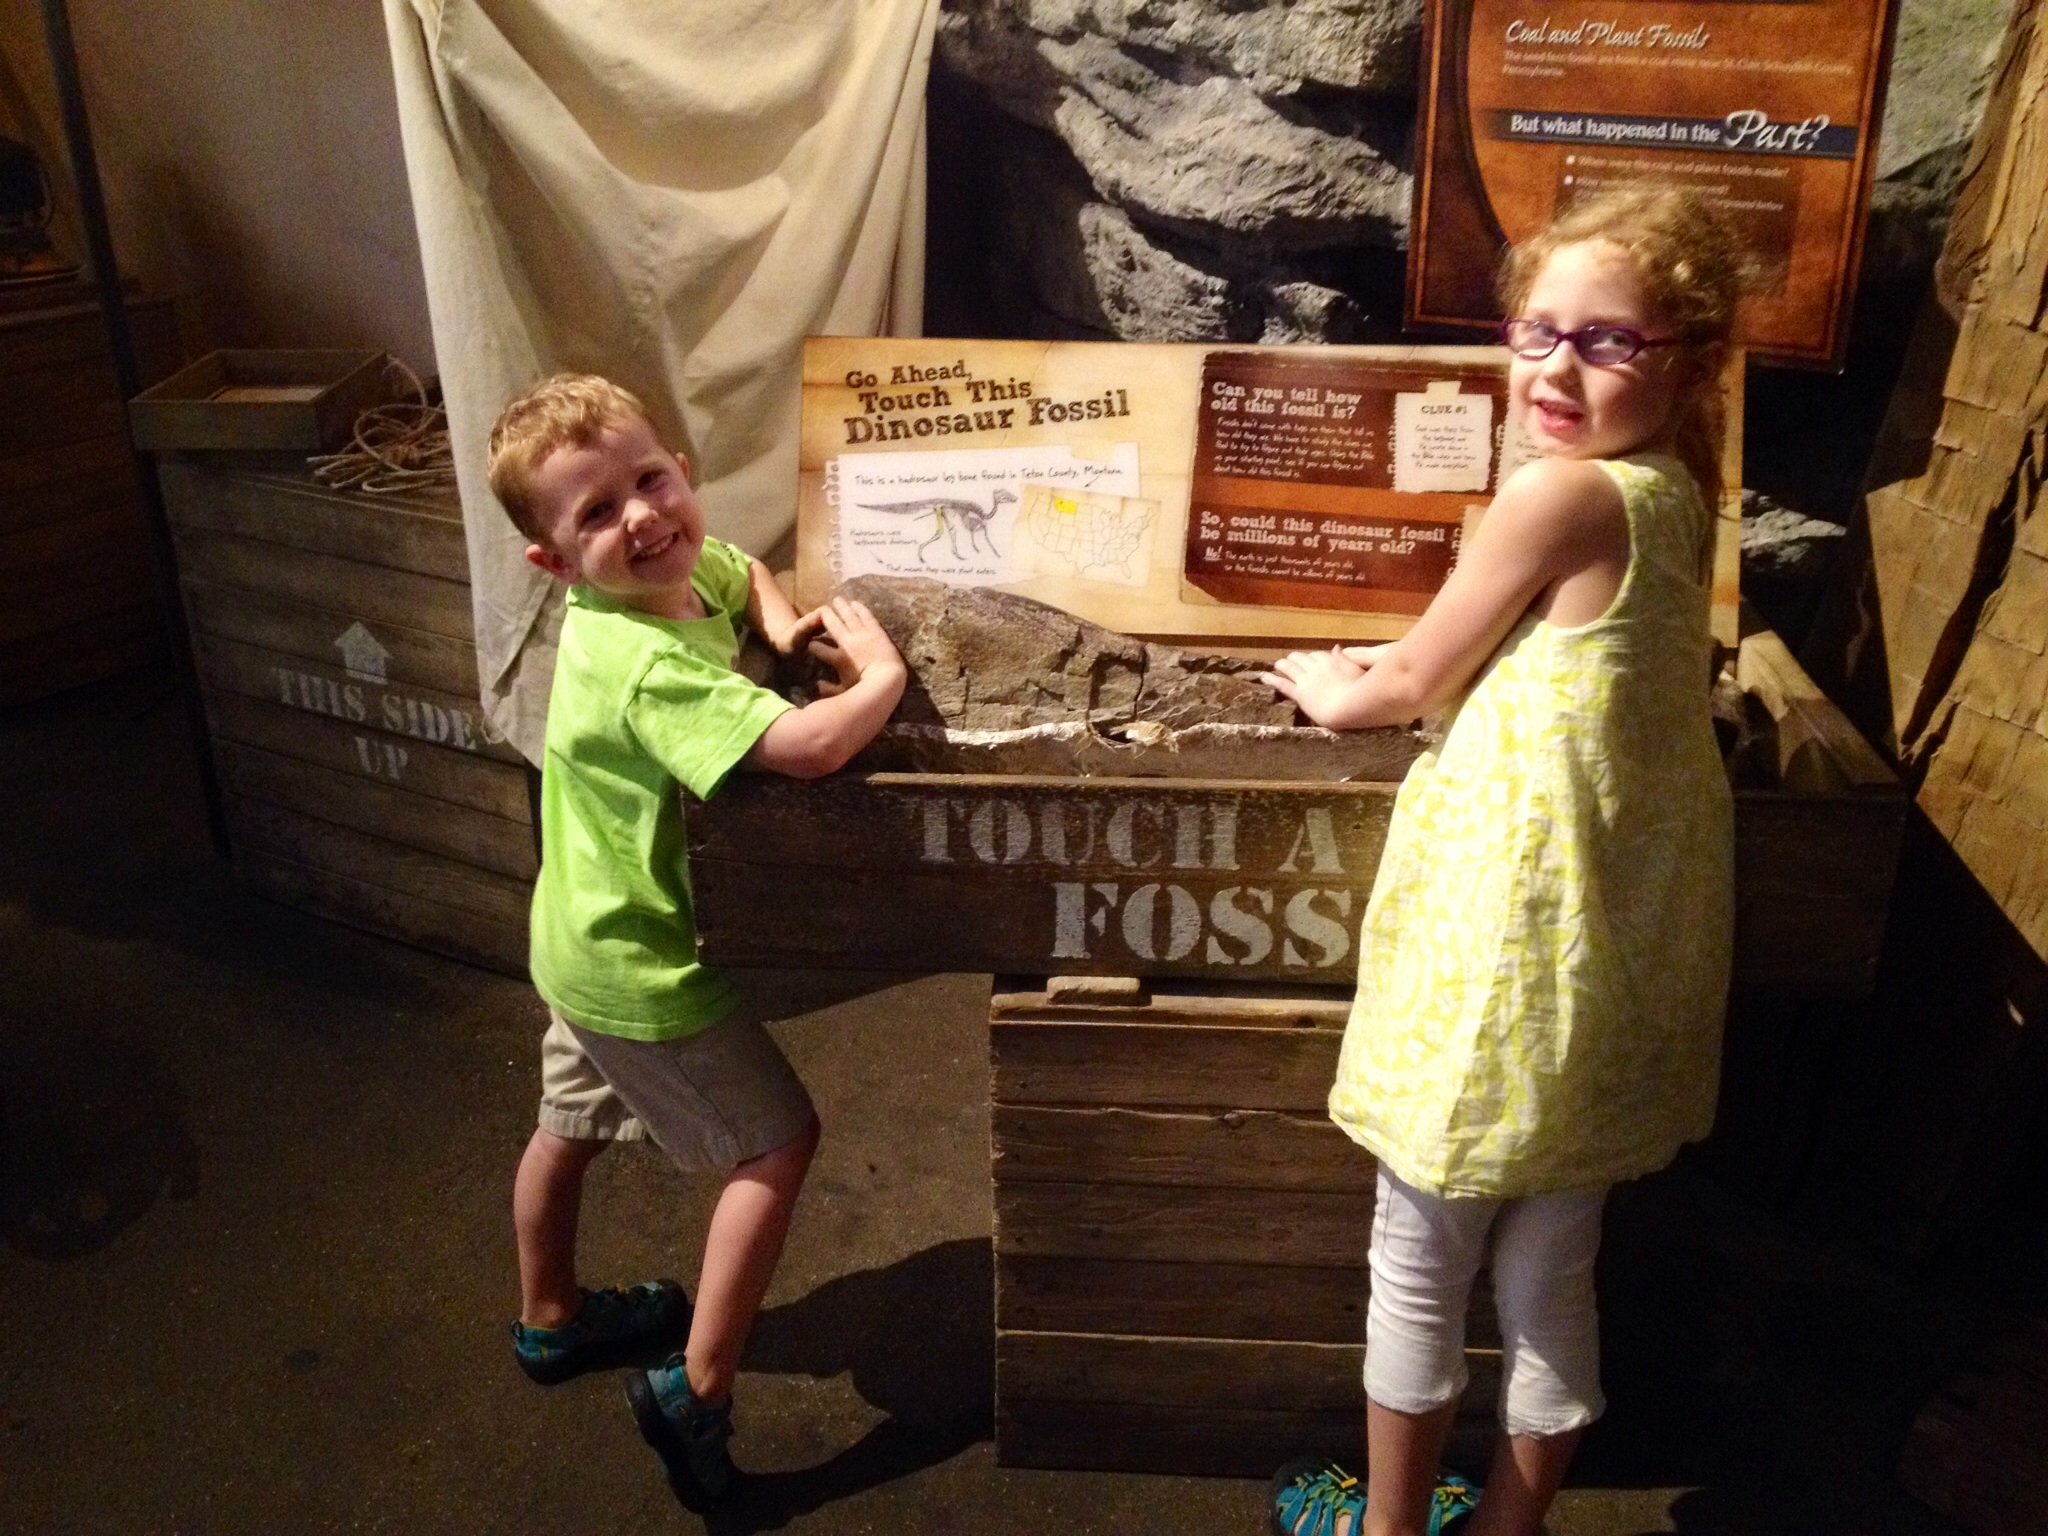 So how many of you can say that you've touched a dinosaur fossil without being kicked out of the museum?